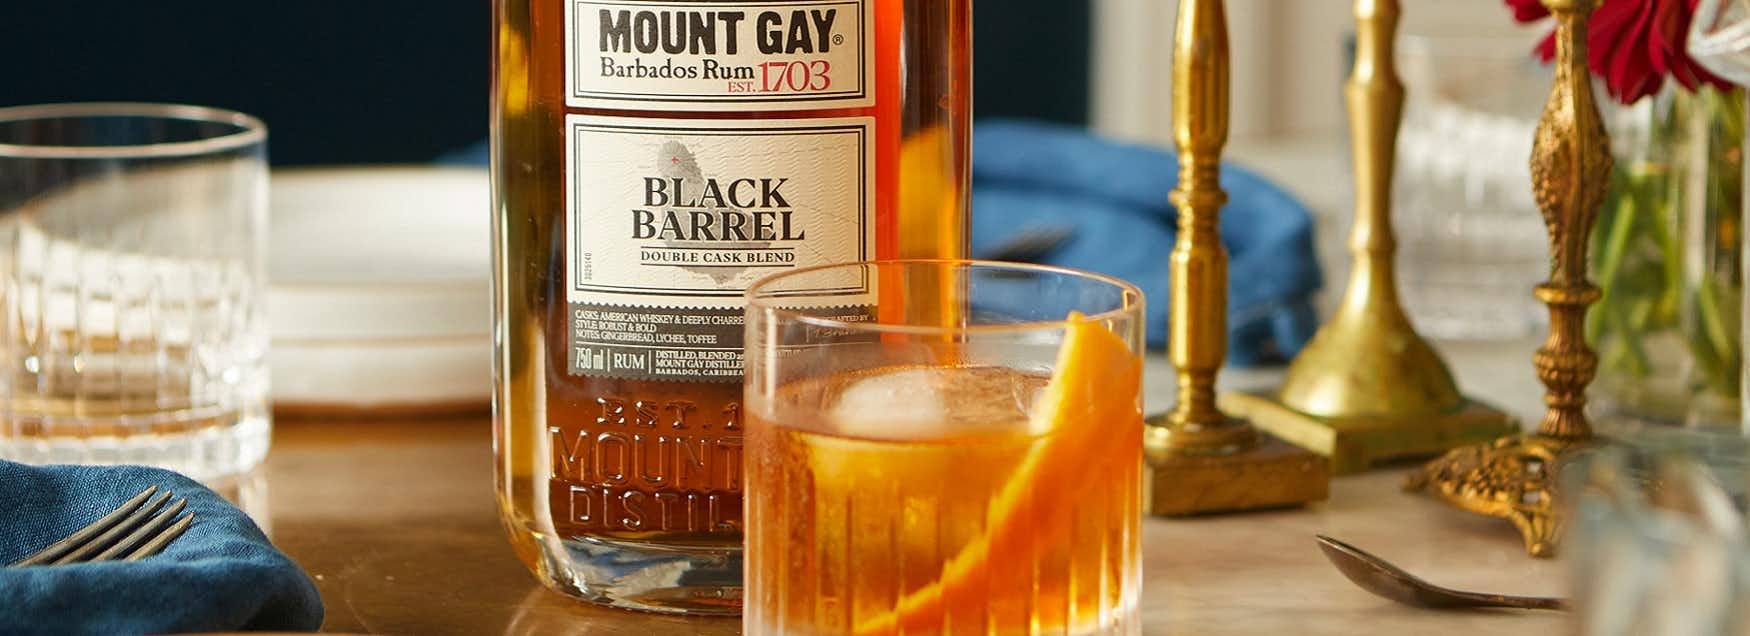 Mount Gay Rum Old Fashioned